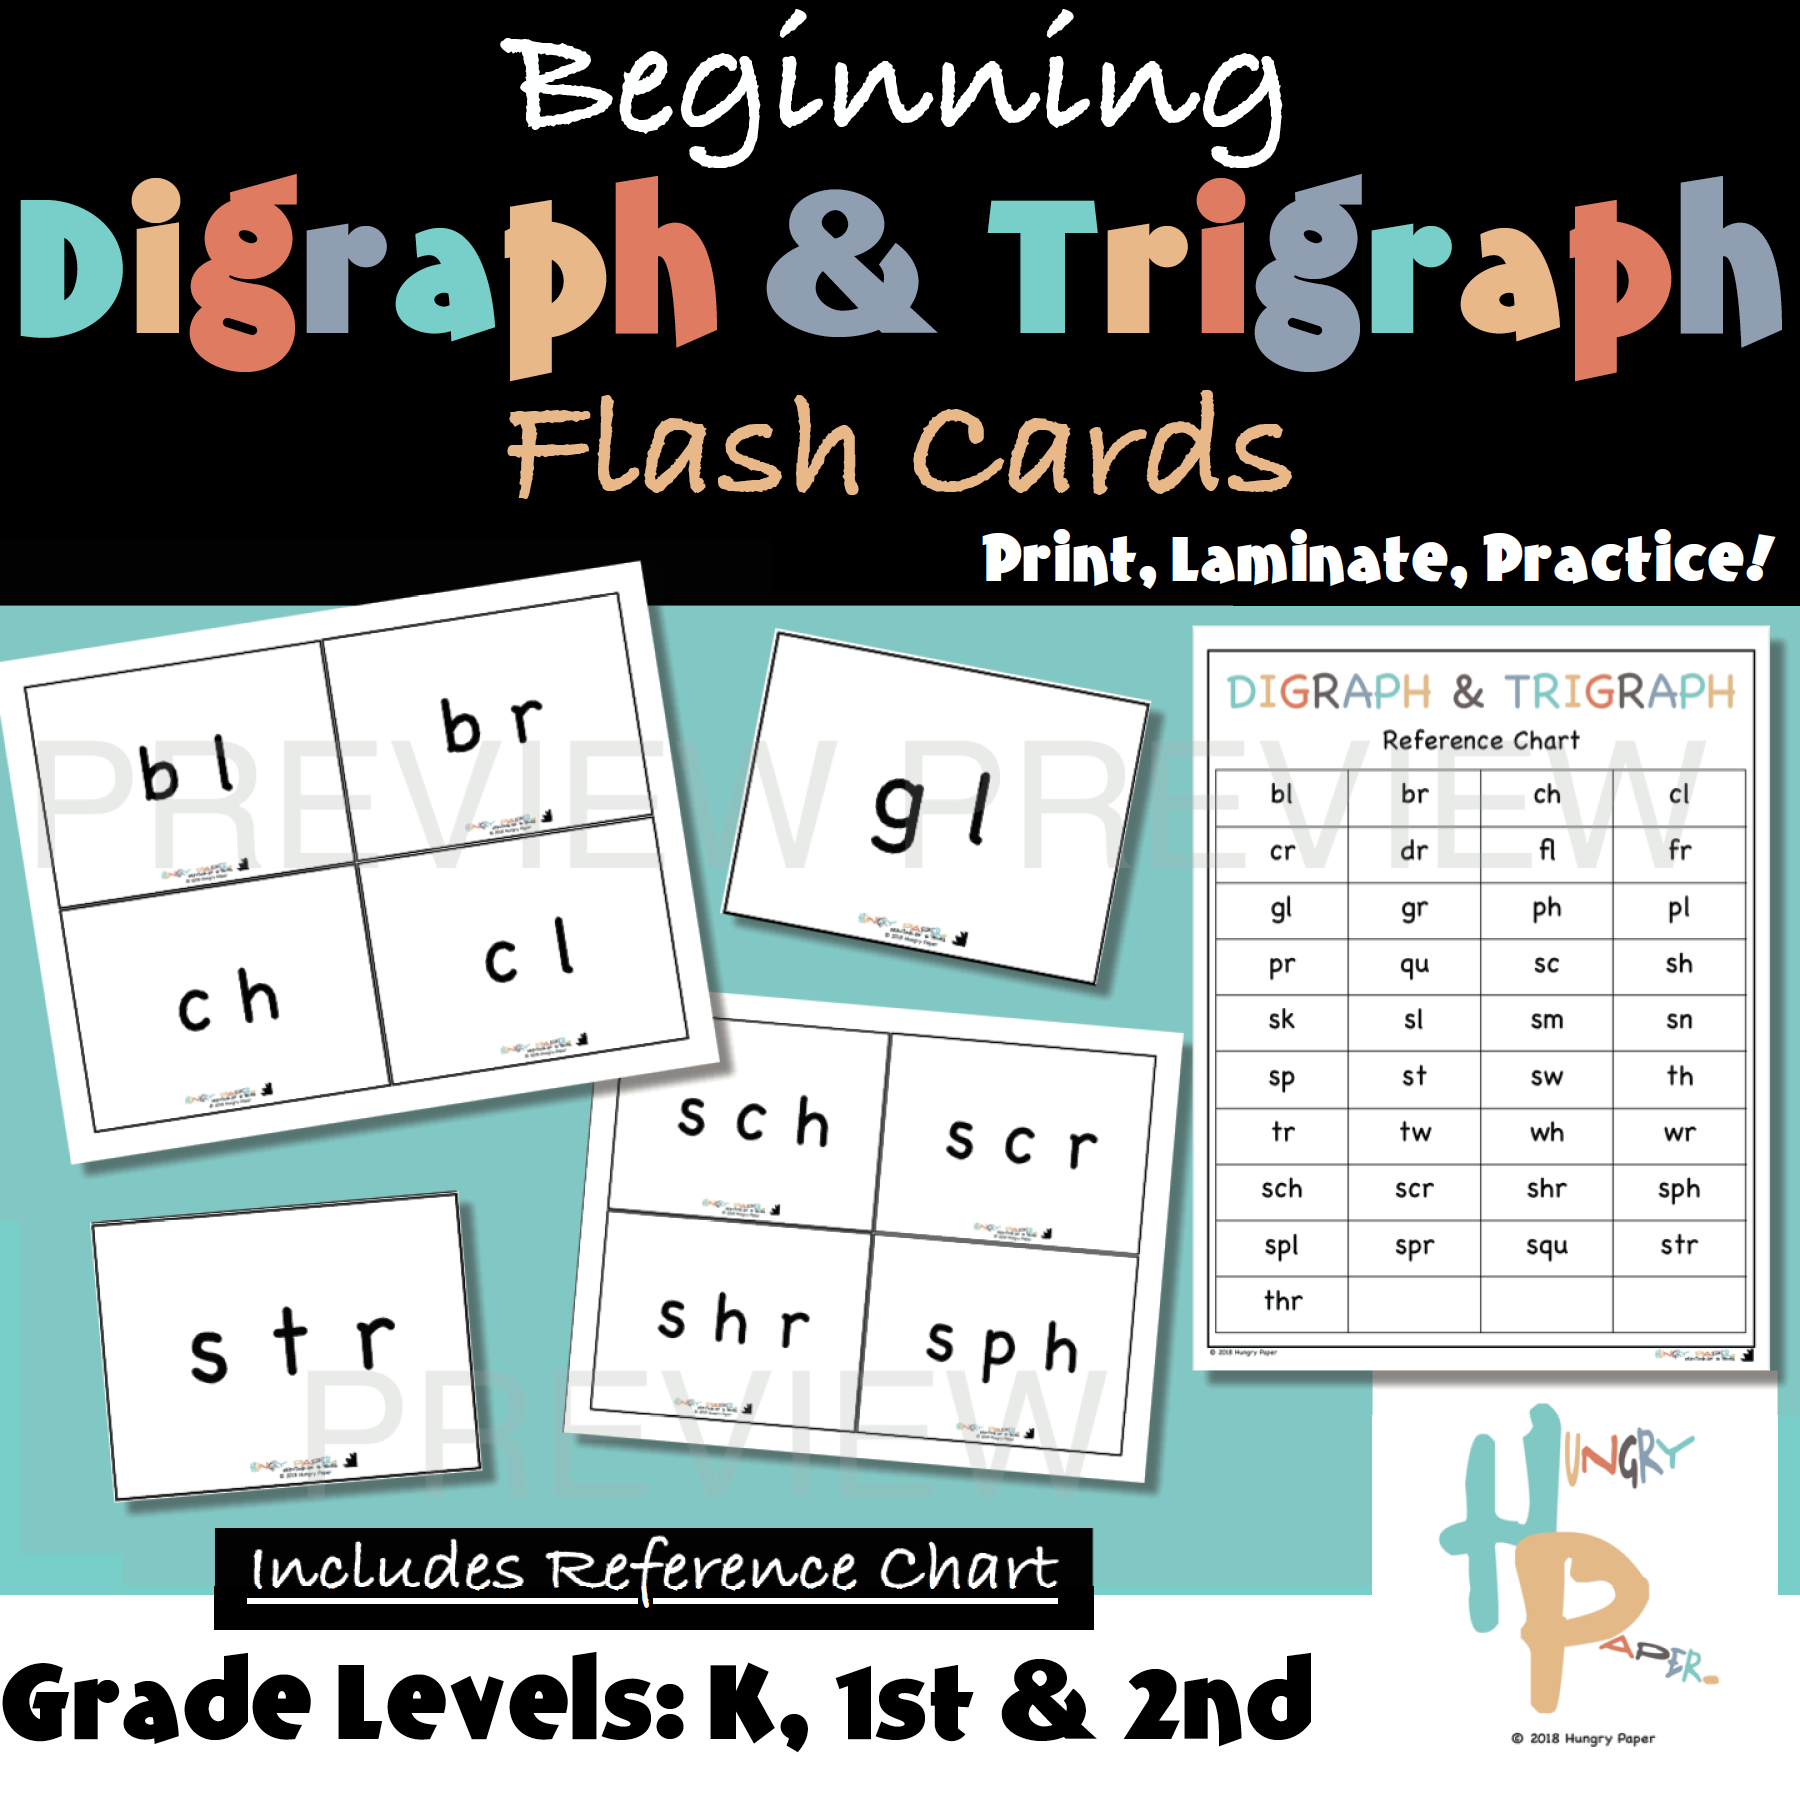 Beginning Digraph Amp Trigraph Flash Cards With Reference